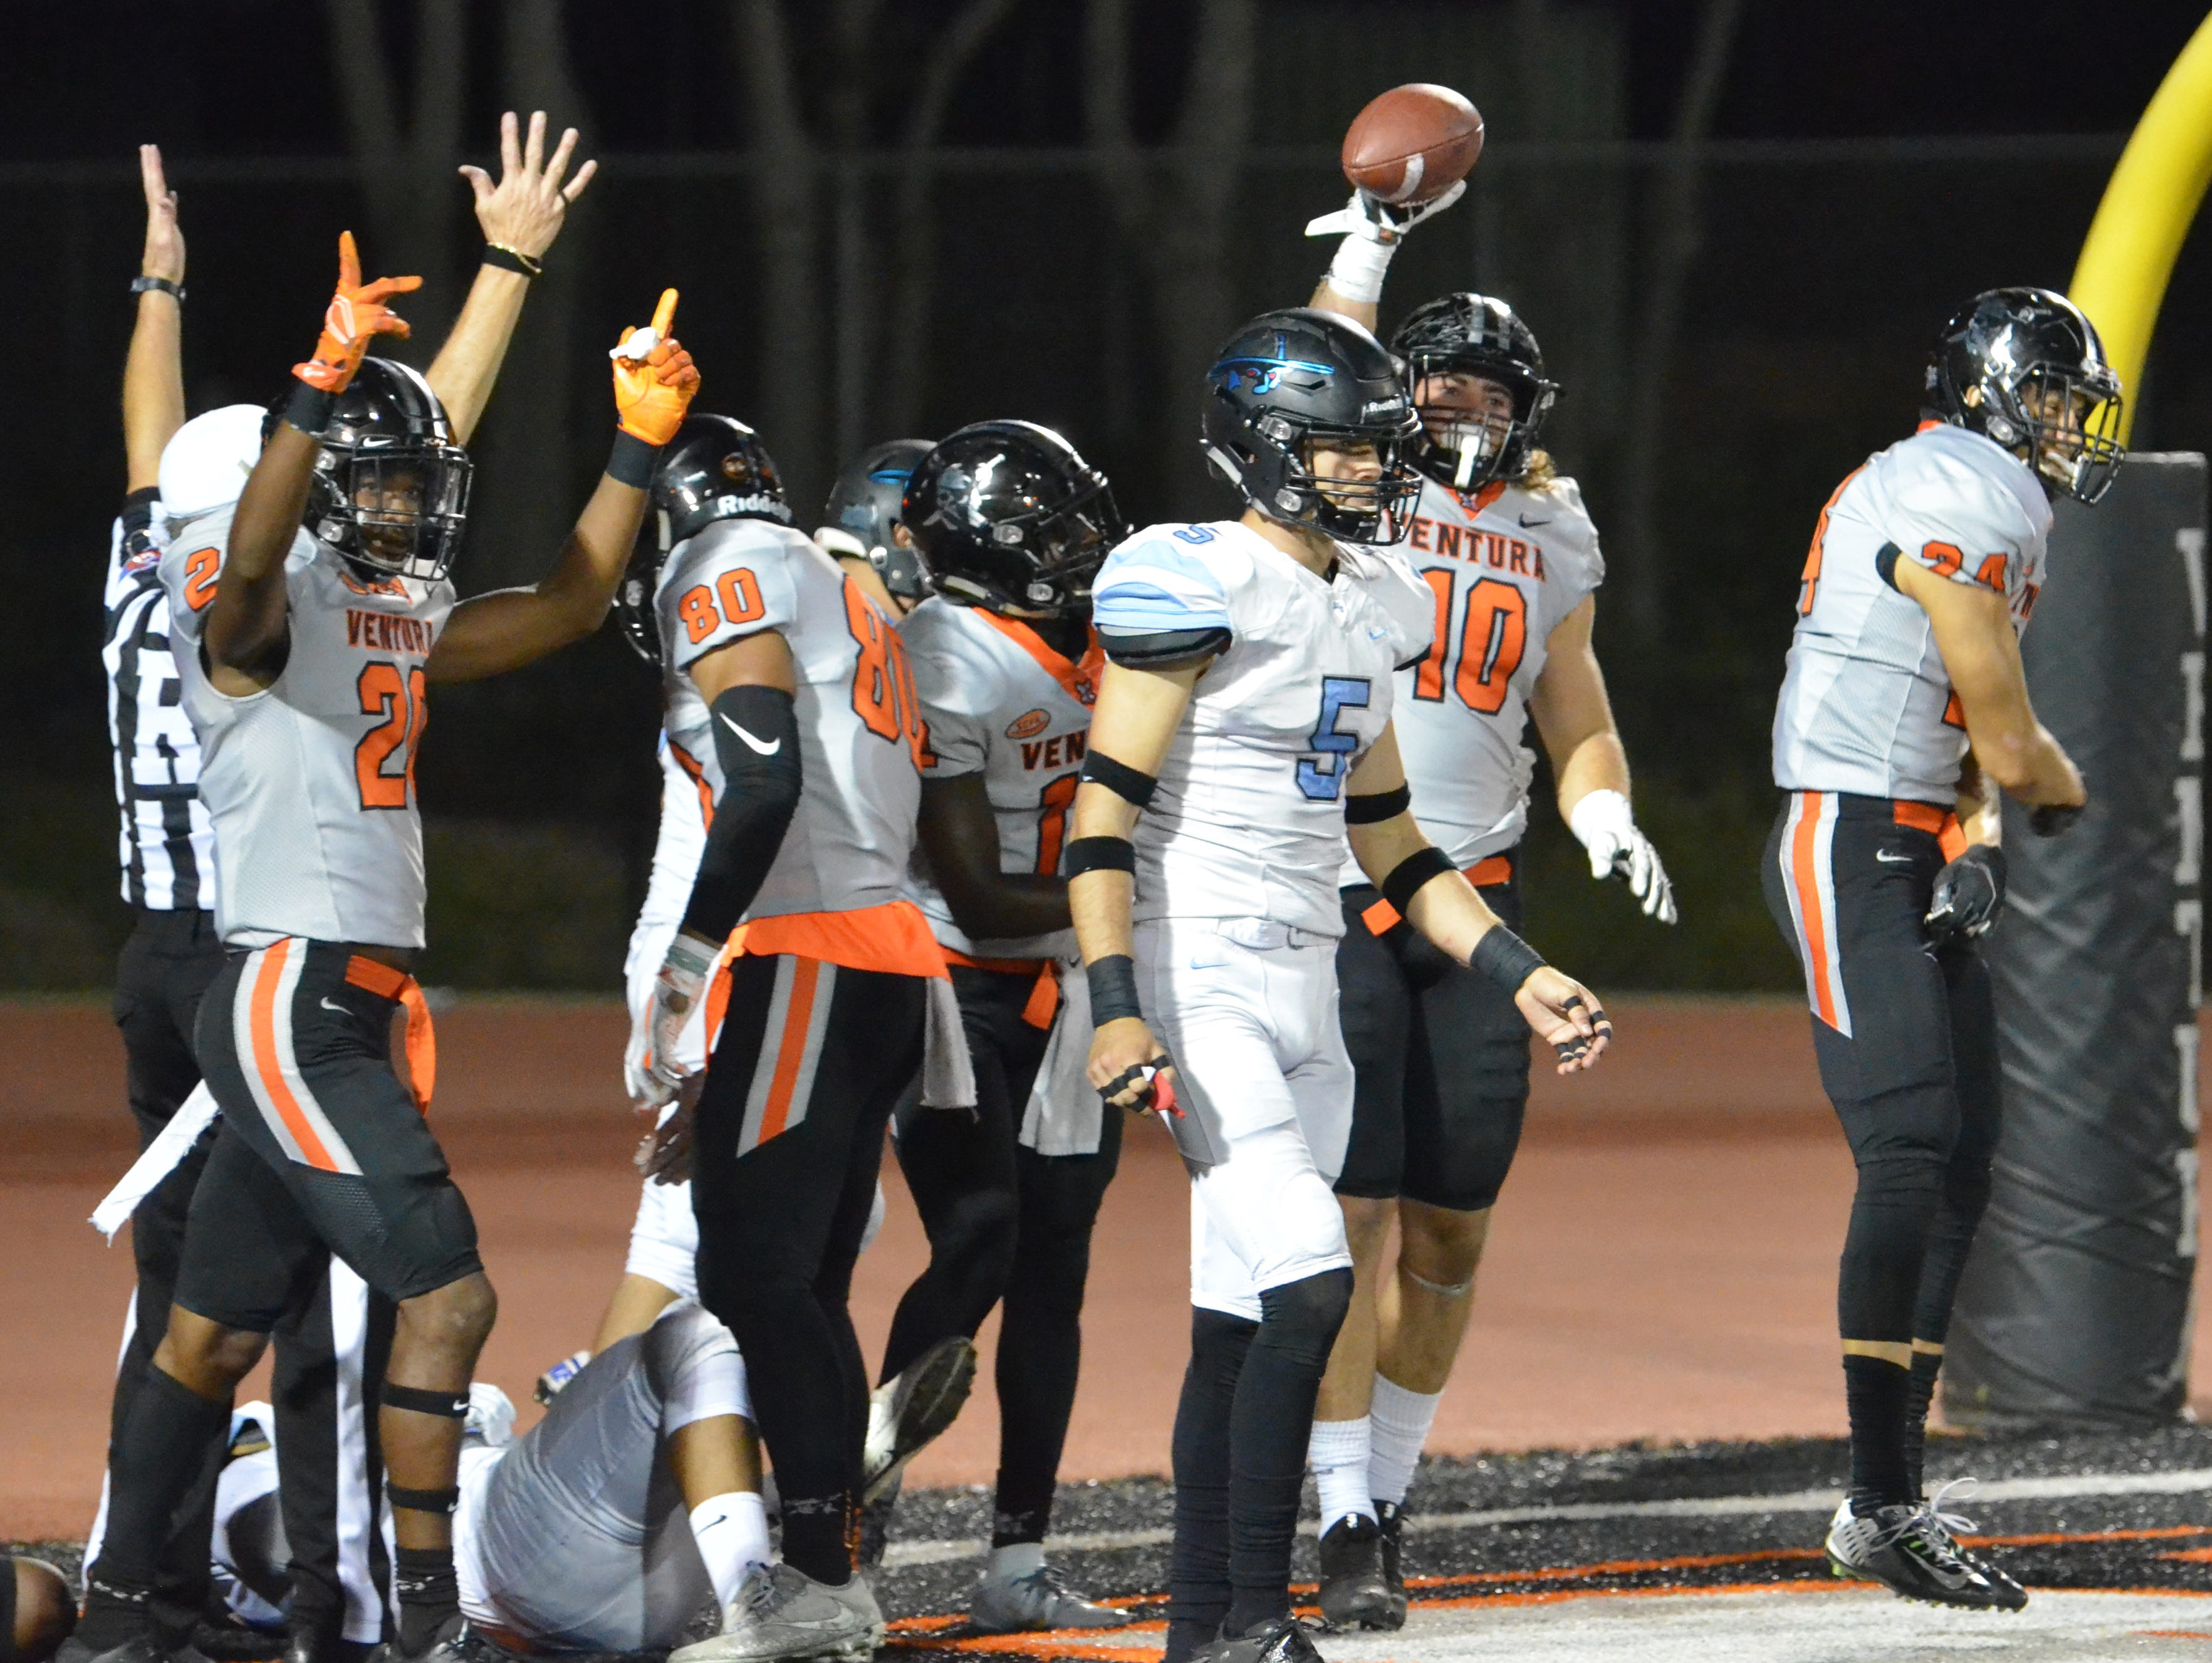 Ventura College's Trennan Carlson celebrates after returning his blocked punt for a touchdown in the 51st Citrus Cup game on Saturday night at the VC Sportsplex. VC won 62-7.